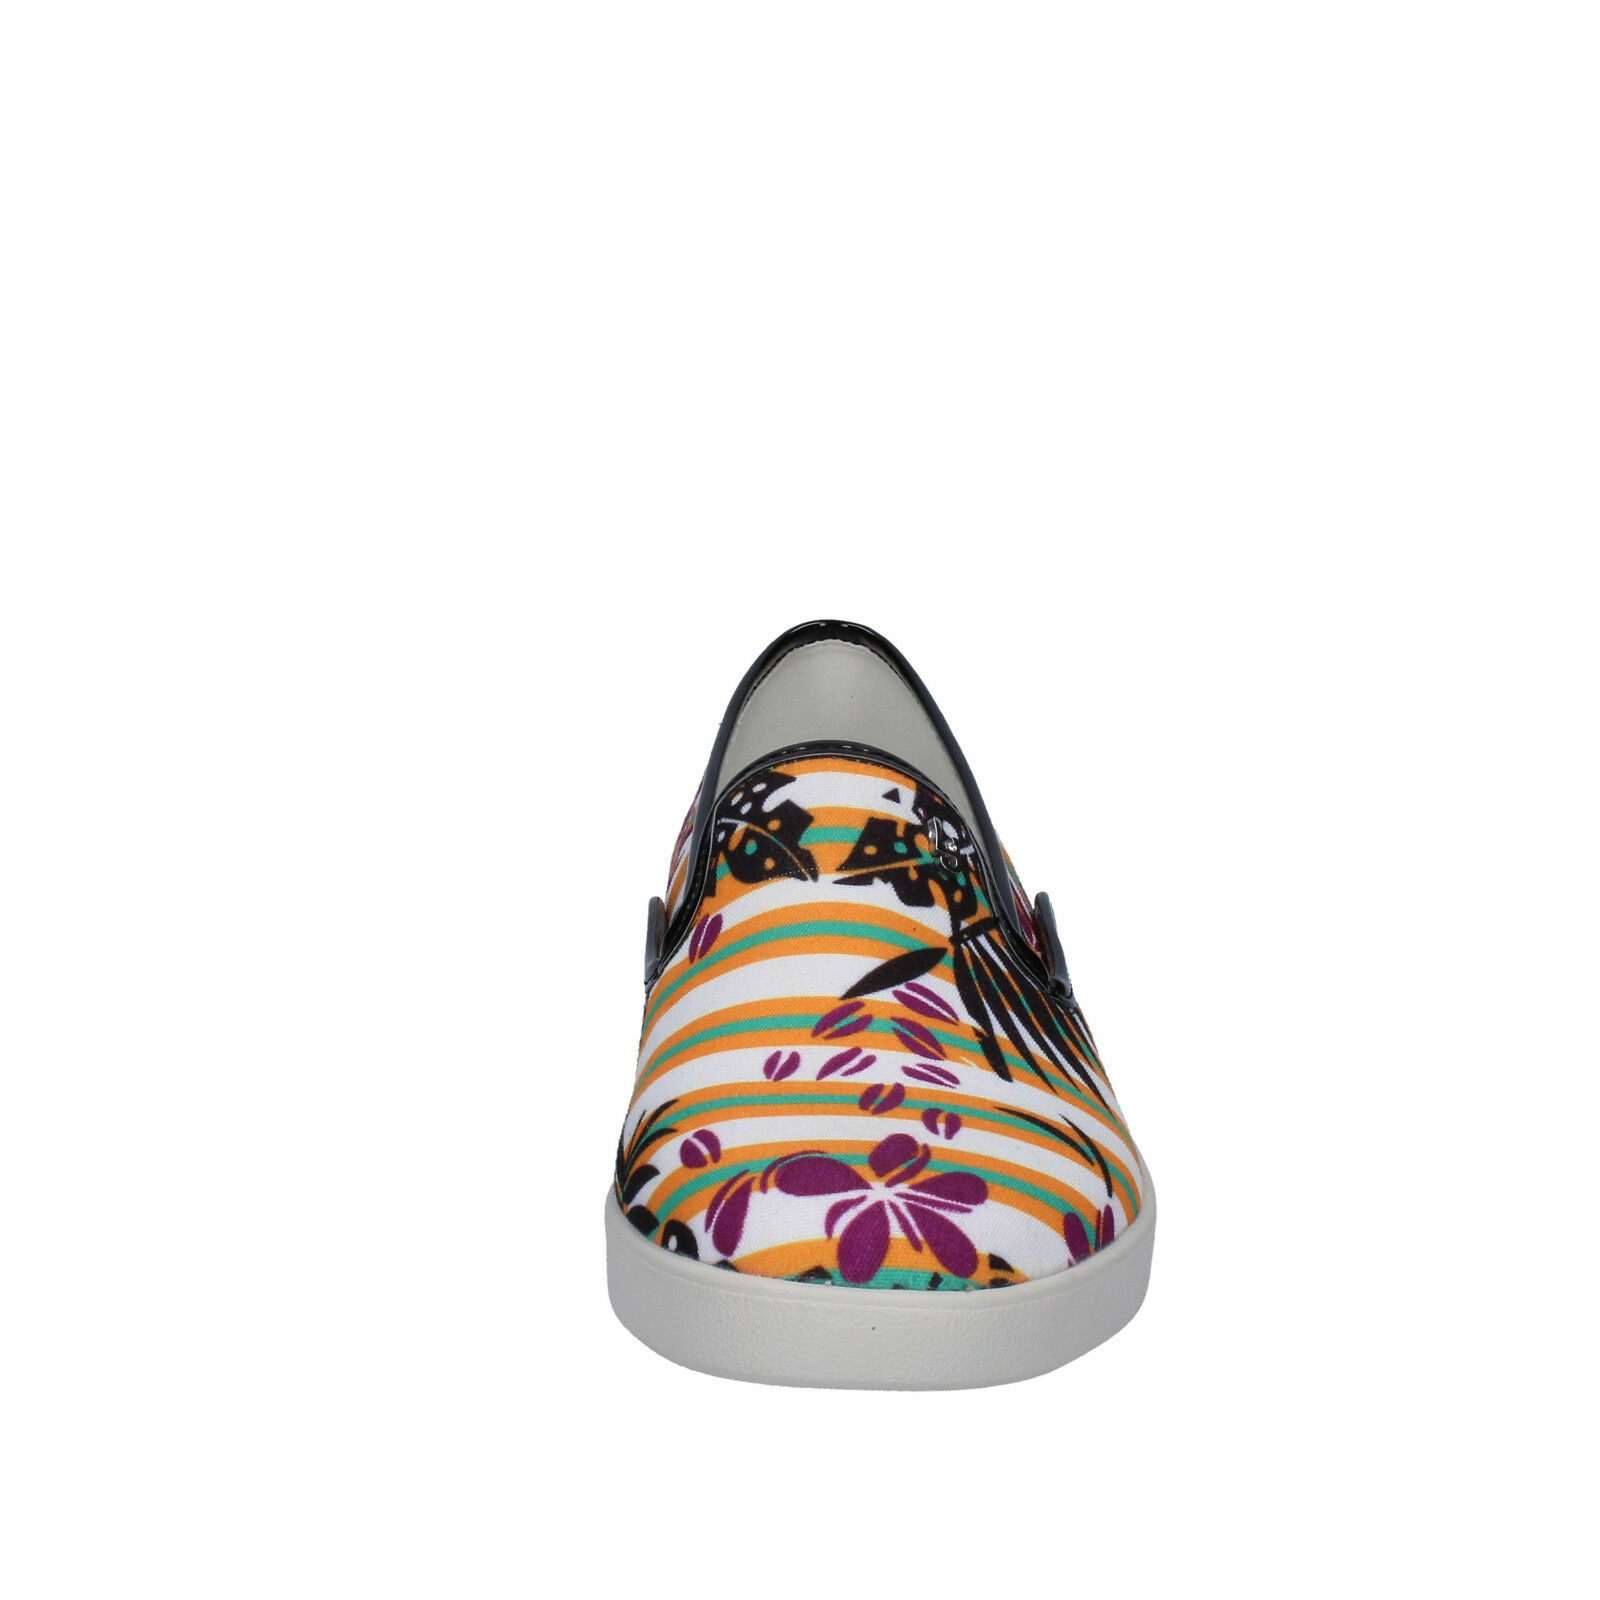 Damenschuhe schuhe LIU multicolor JO 8 (EU 41) slip on multicolor LIU canvas BT445-41 49921f